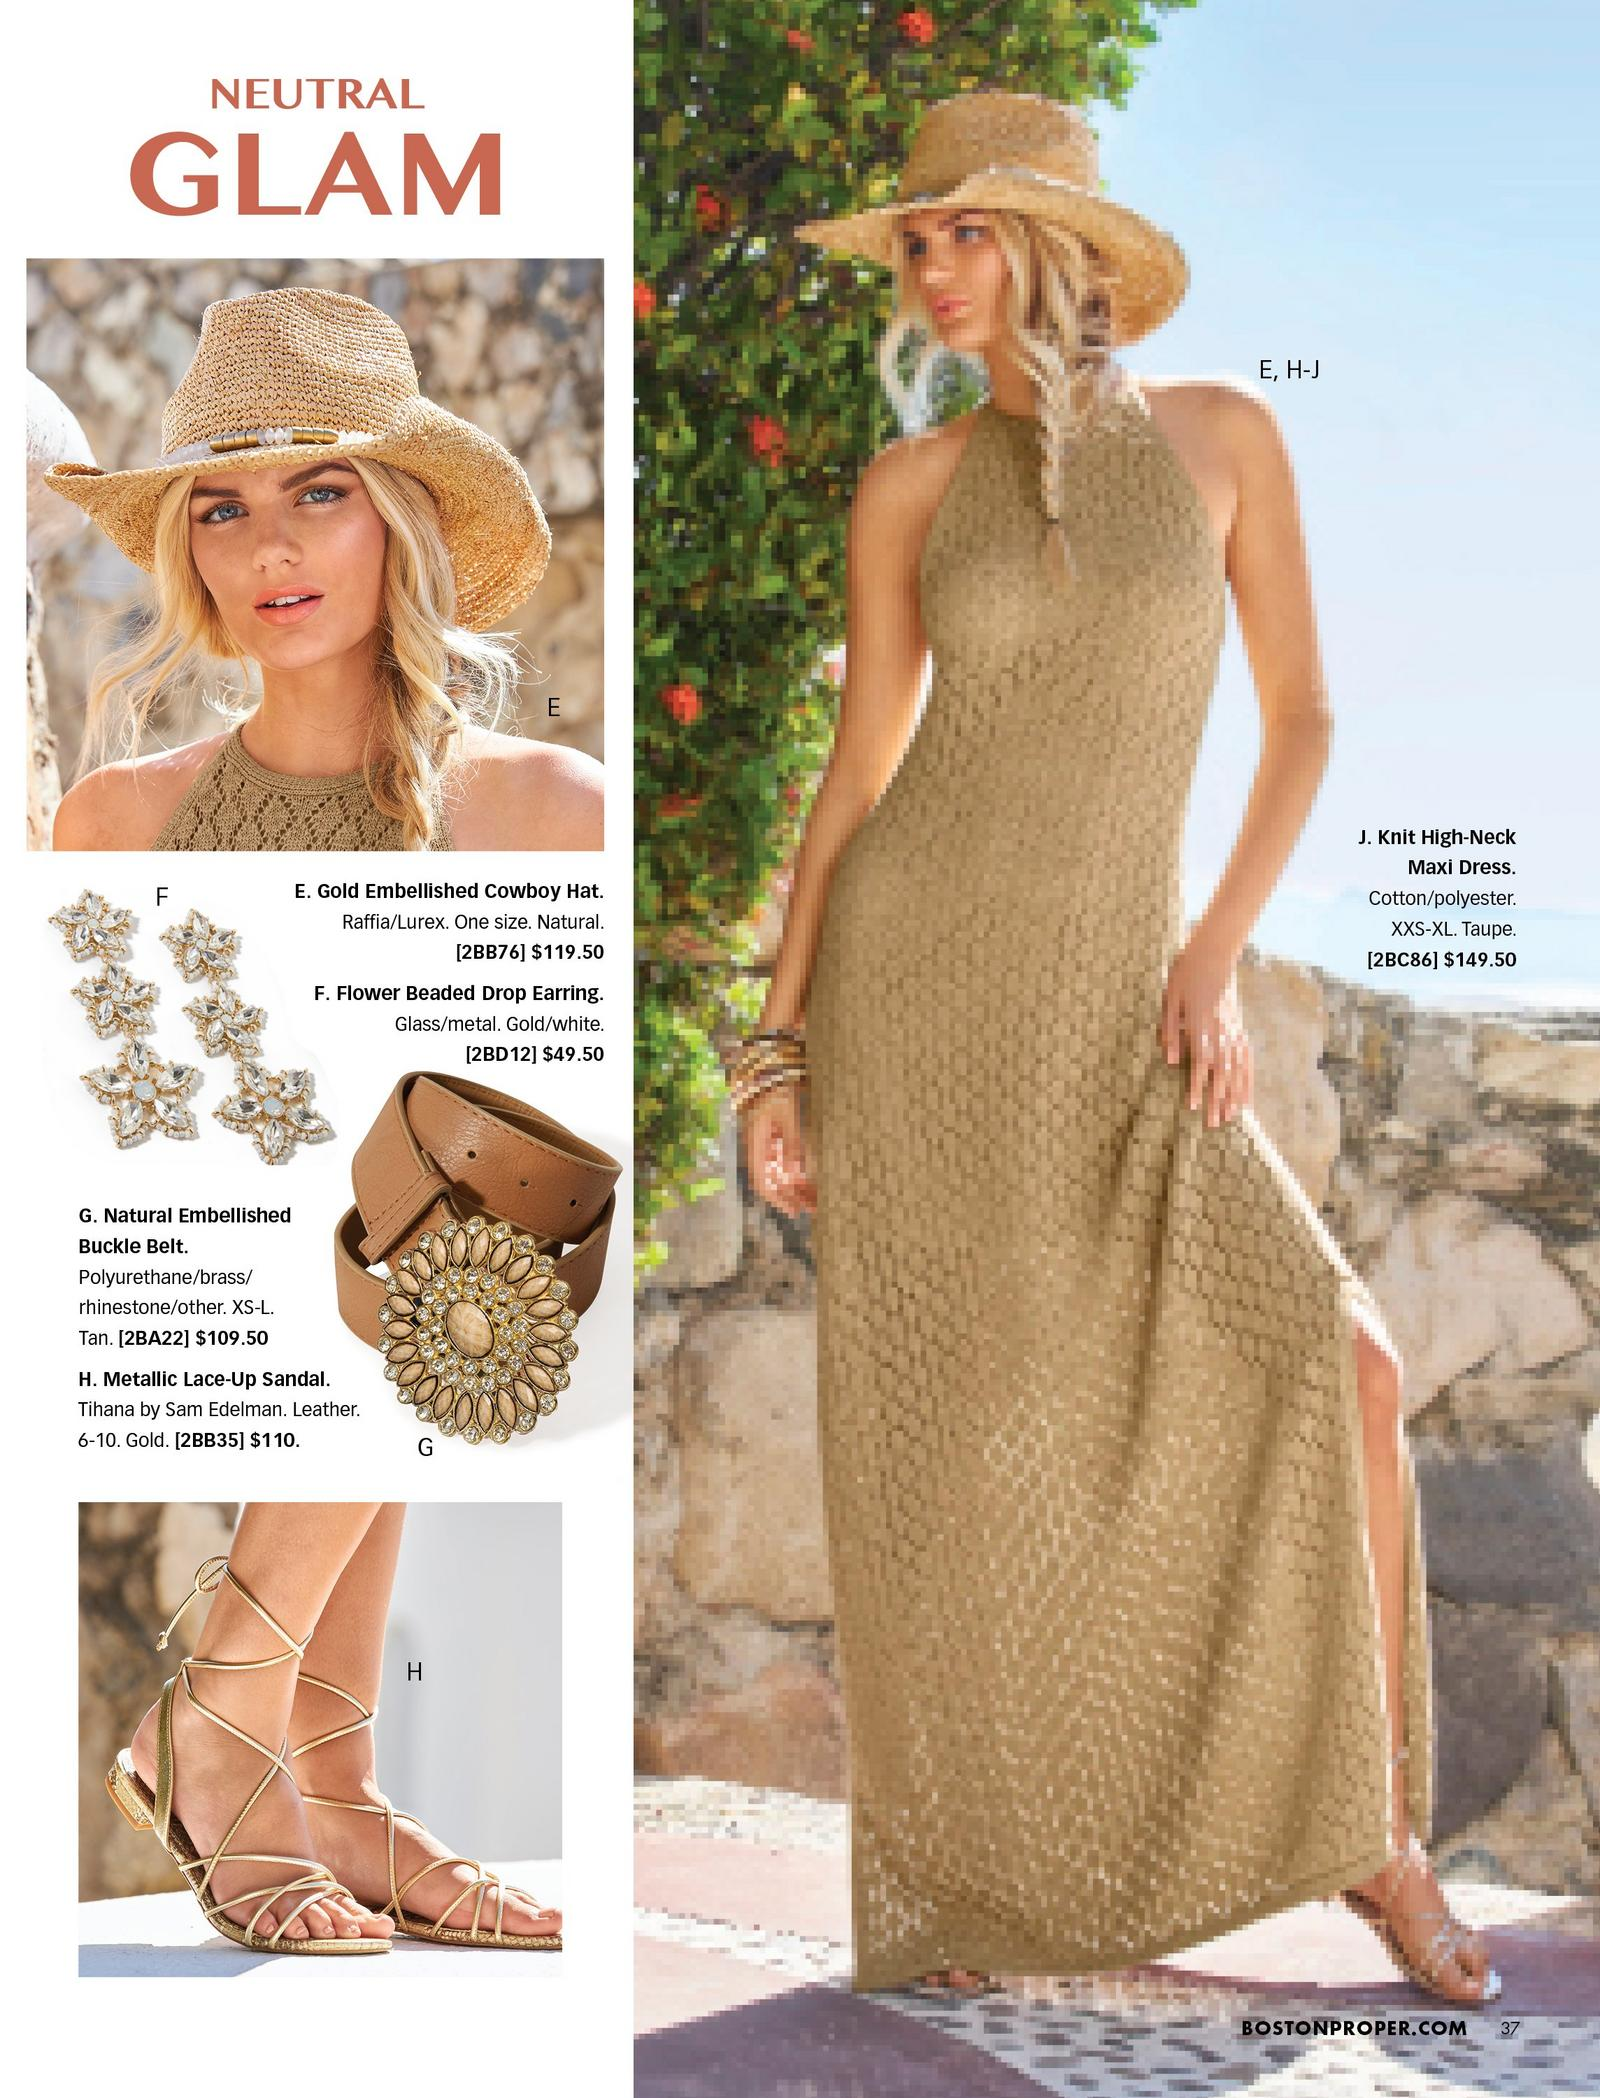 left panel shows: gold embellished cowboy hat, flower drop earrings, brown embellished belt, and gold lace-up sandals. right model wearing a taupe high-neck sleeveless knit maxi dress, gold lace-up sandals, and gold embellished cowboy hat.